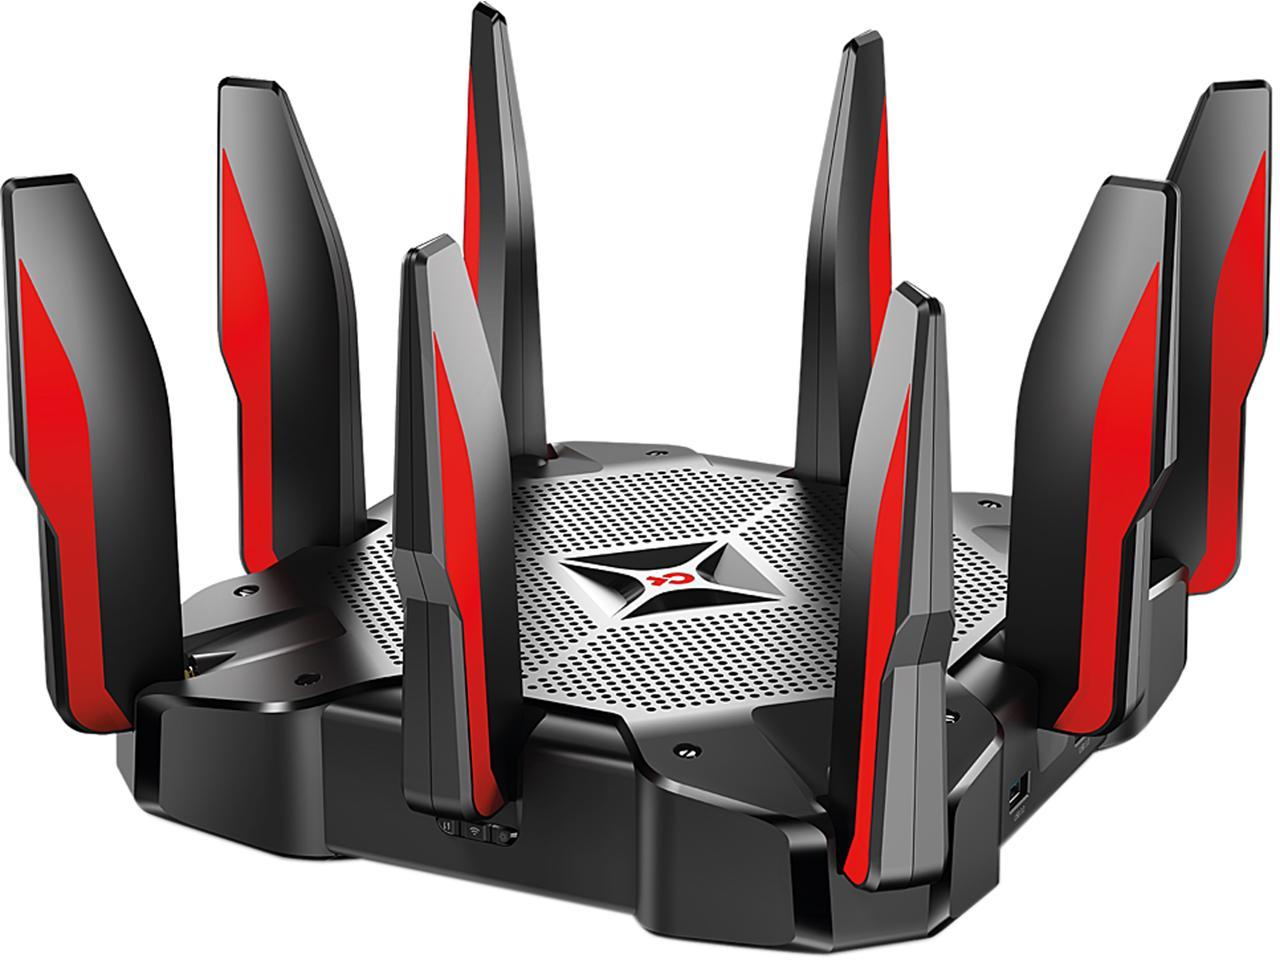 TP-Link Archer C5400X Angled Down to the Left